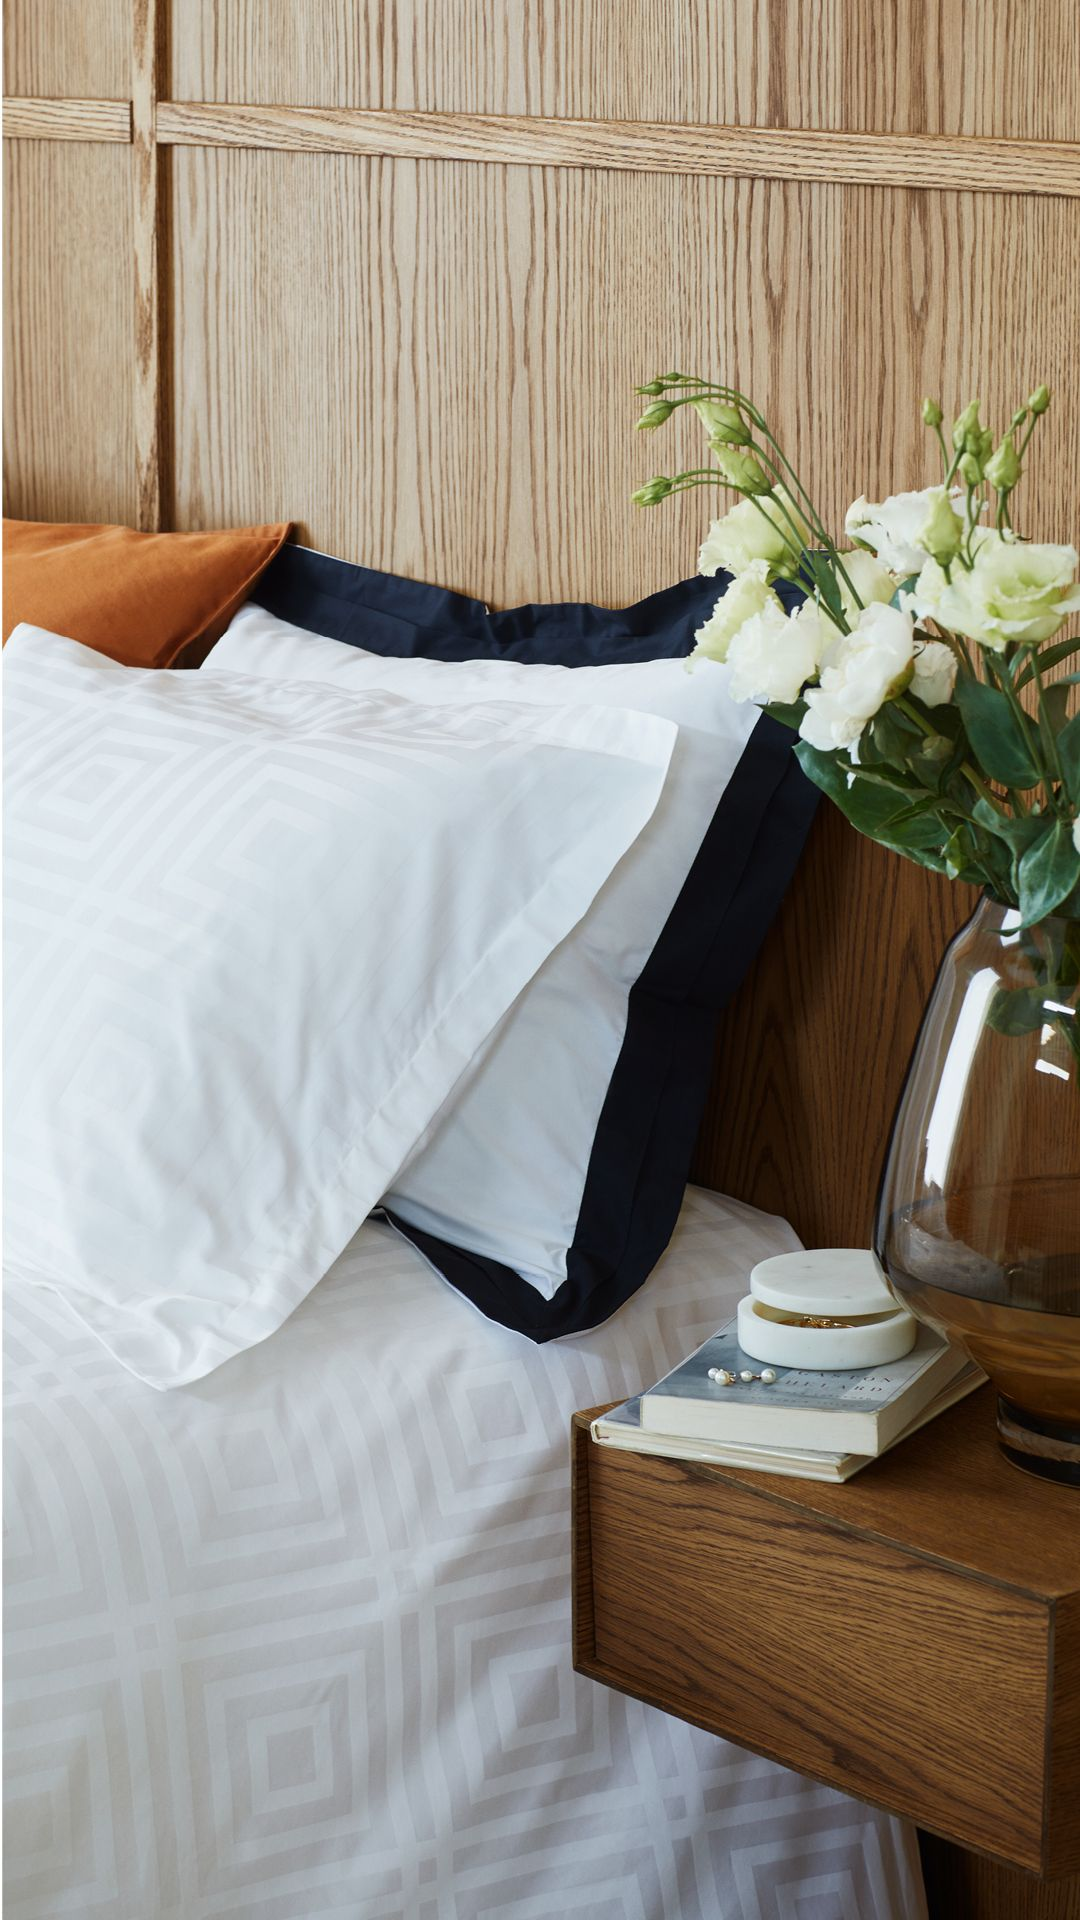 Your Organic Bedroom: Give Your Bedroom The 5-star Treatment With 100